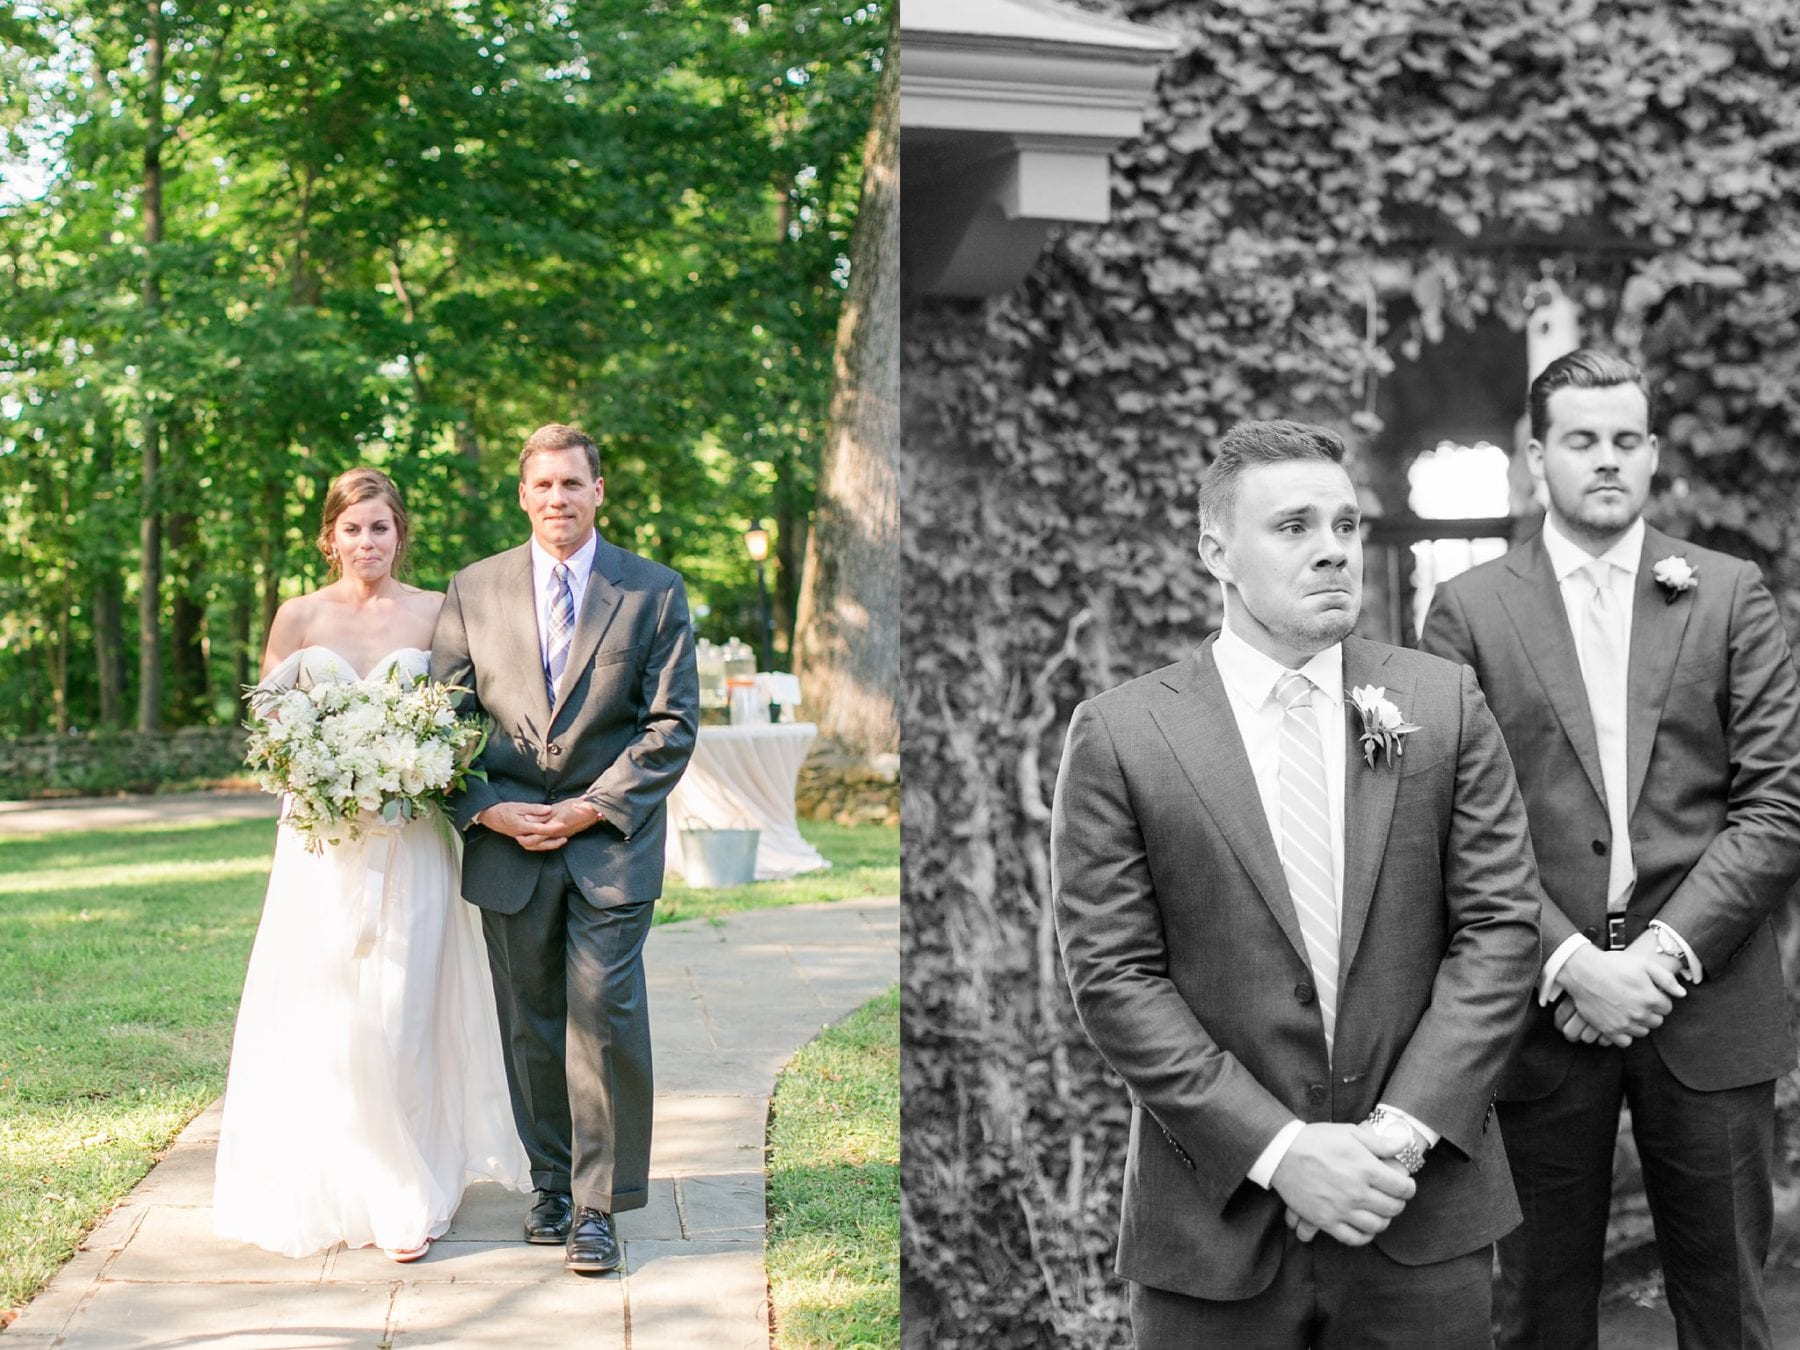 Goodstone Inn Wedding Middleburg Virginia Wedding Photographer Sarah & Kevin-158.jpg